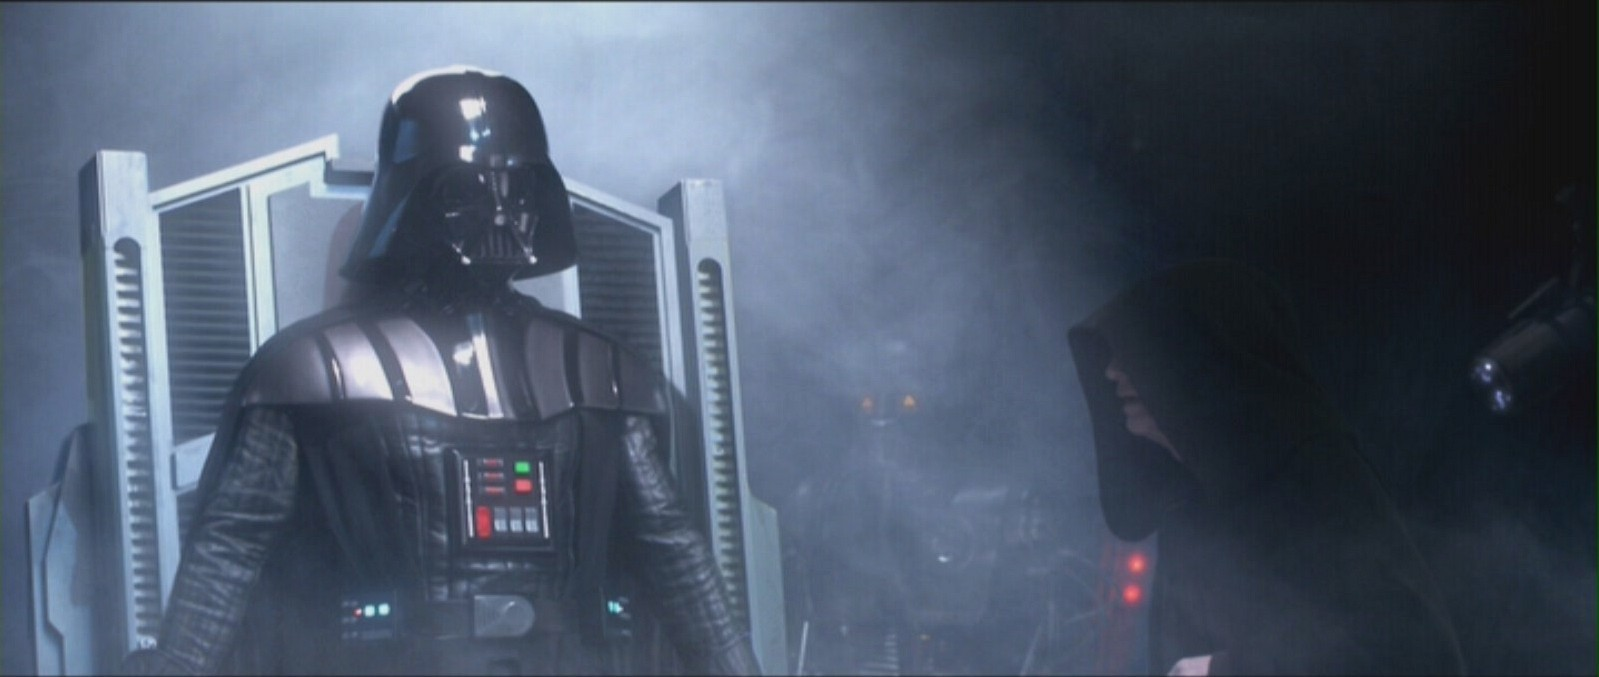 Vader rises from the table in Star Wars Episode III Revenge of the Sith